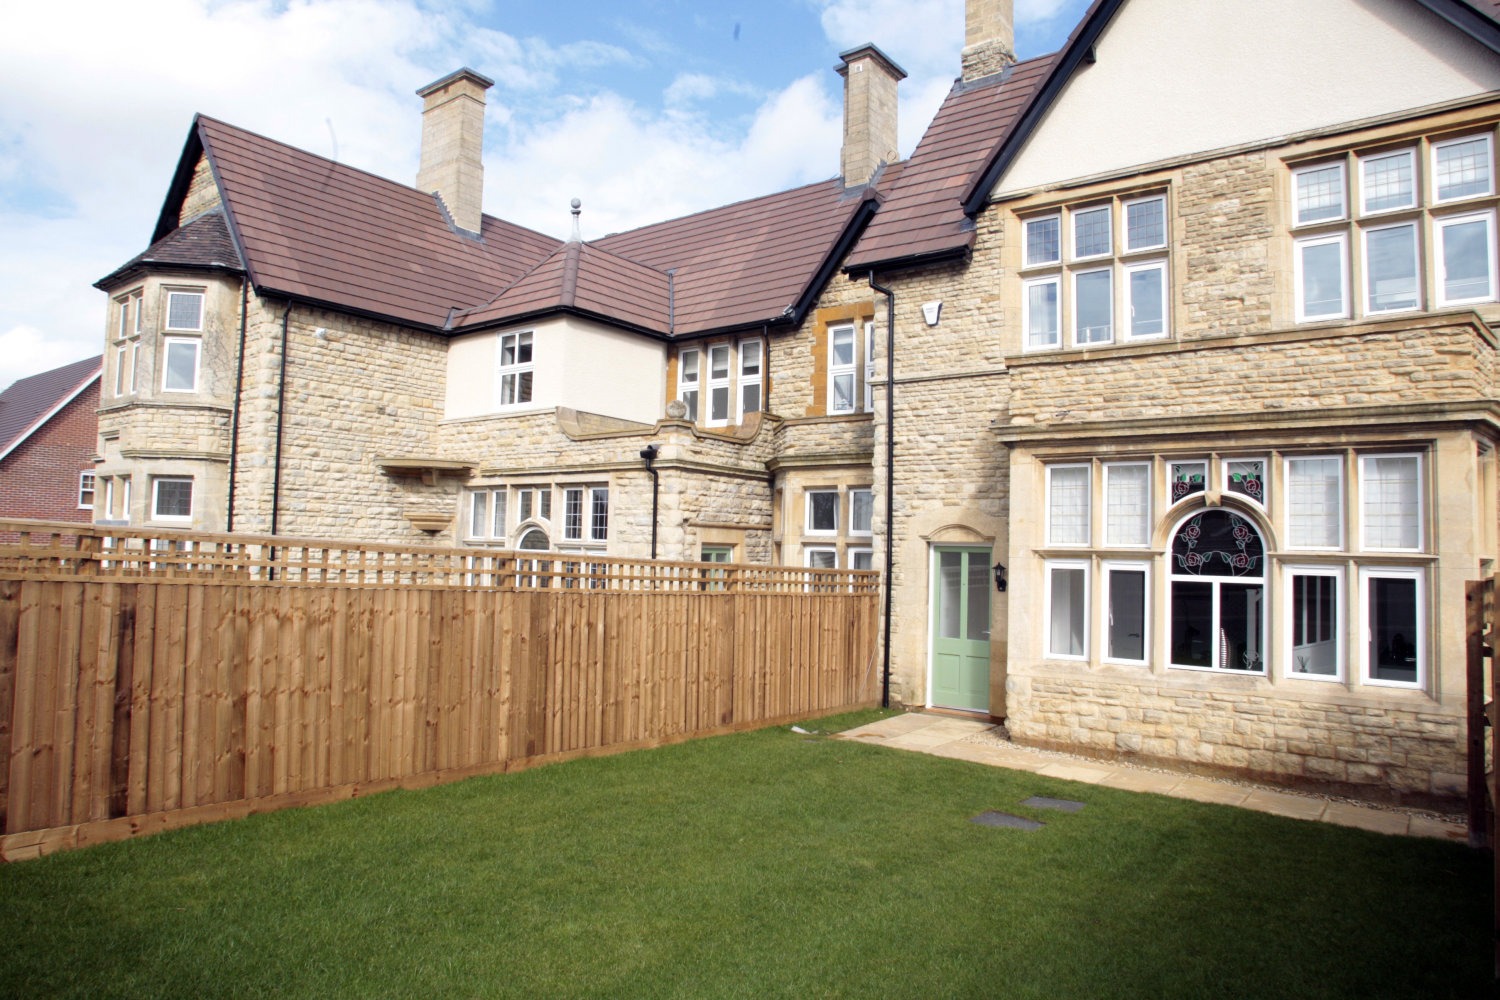 Care Homes In Easingwold